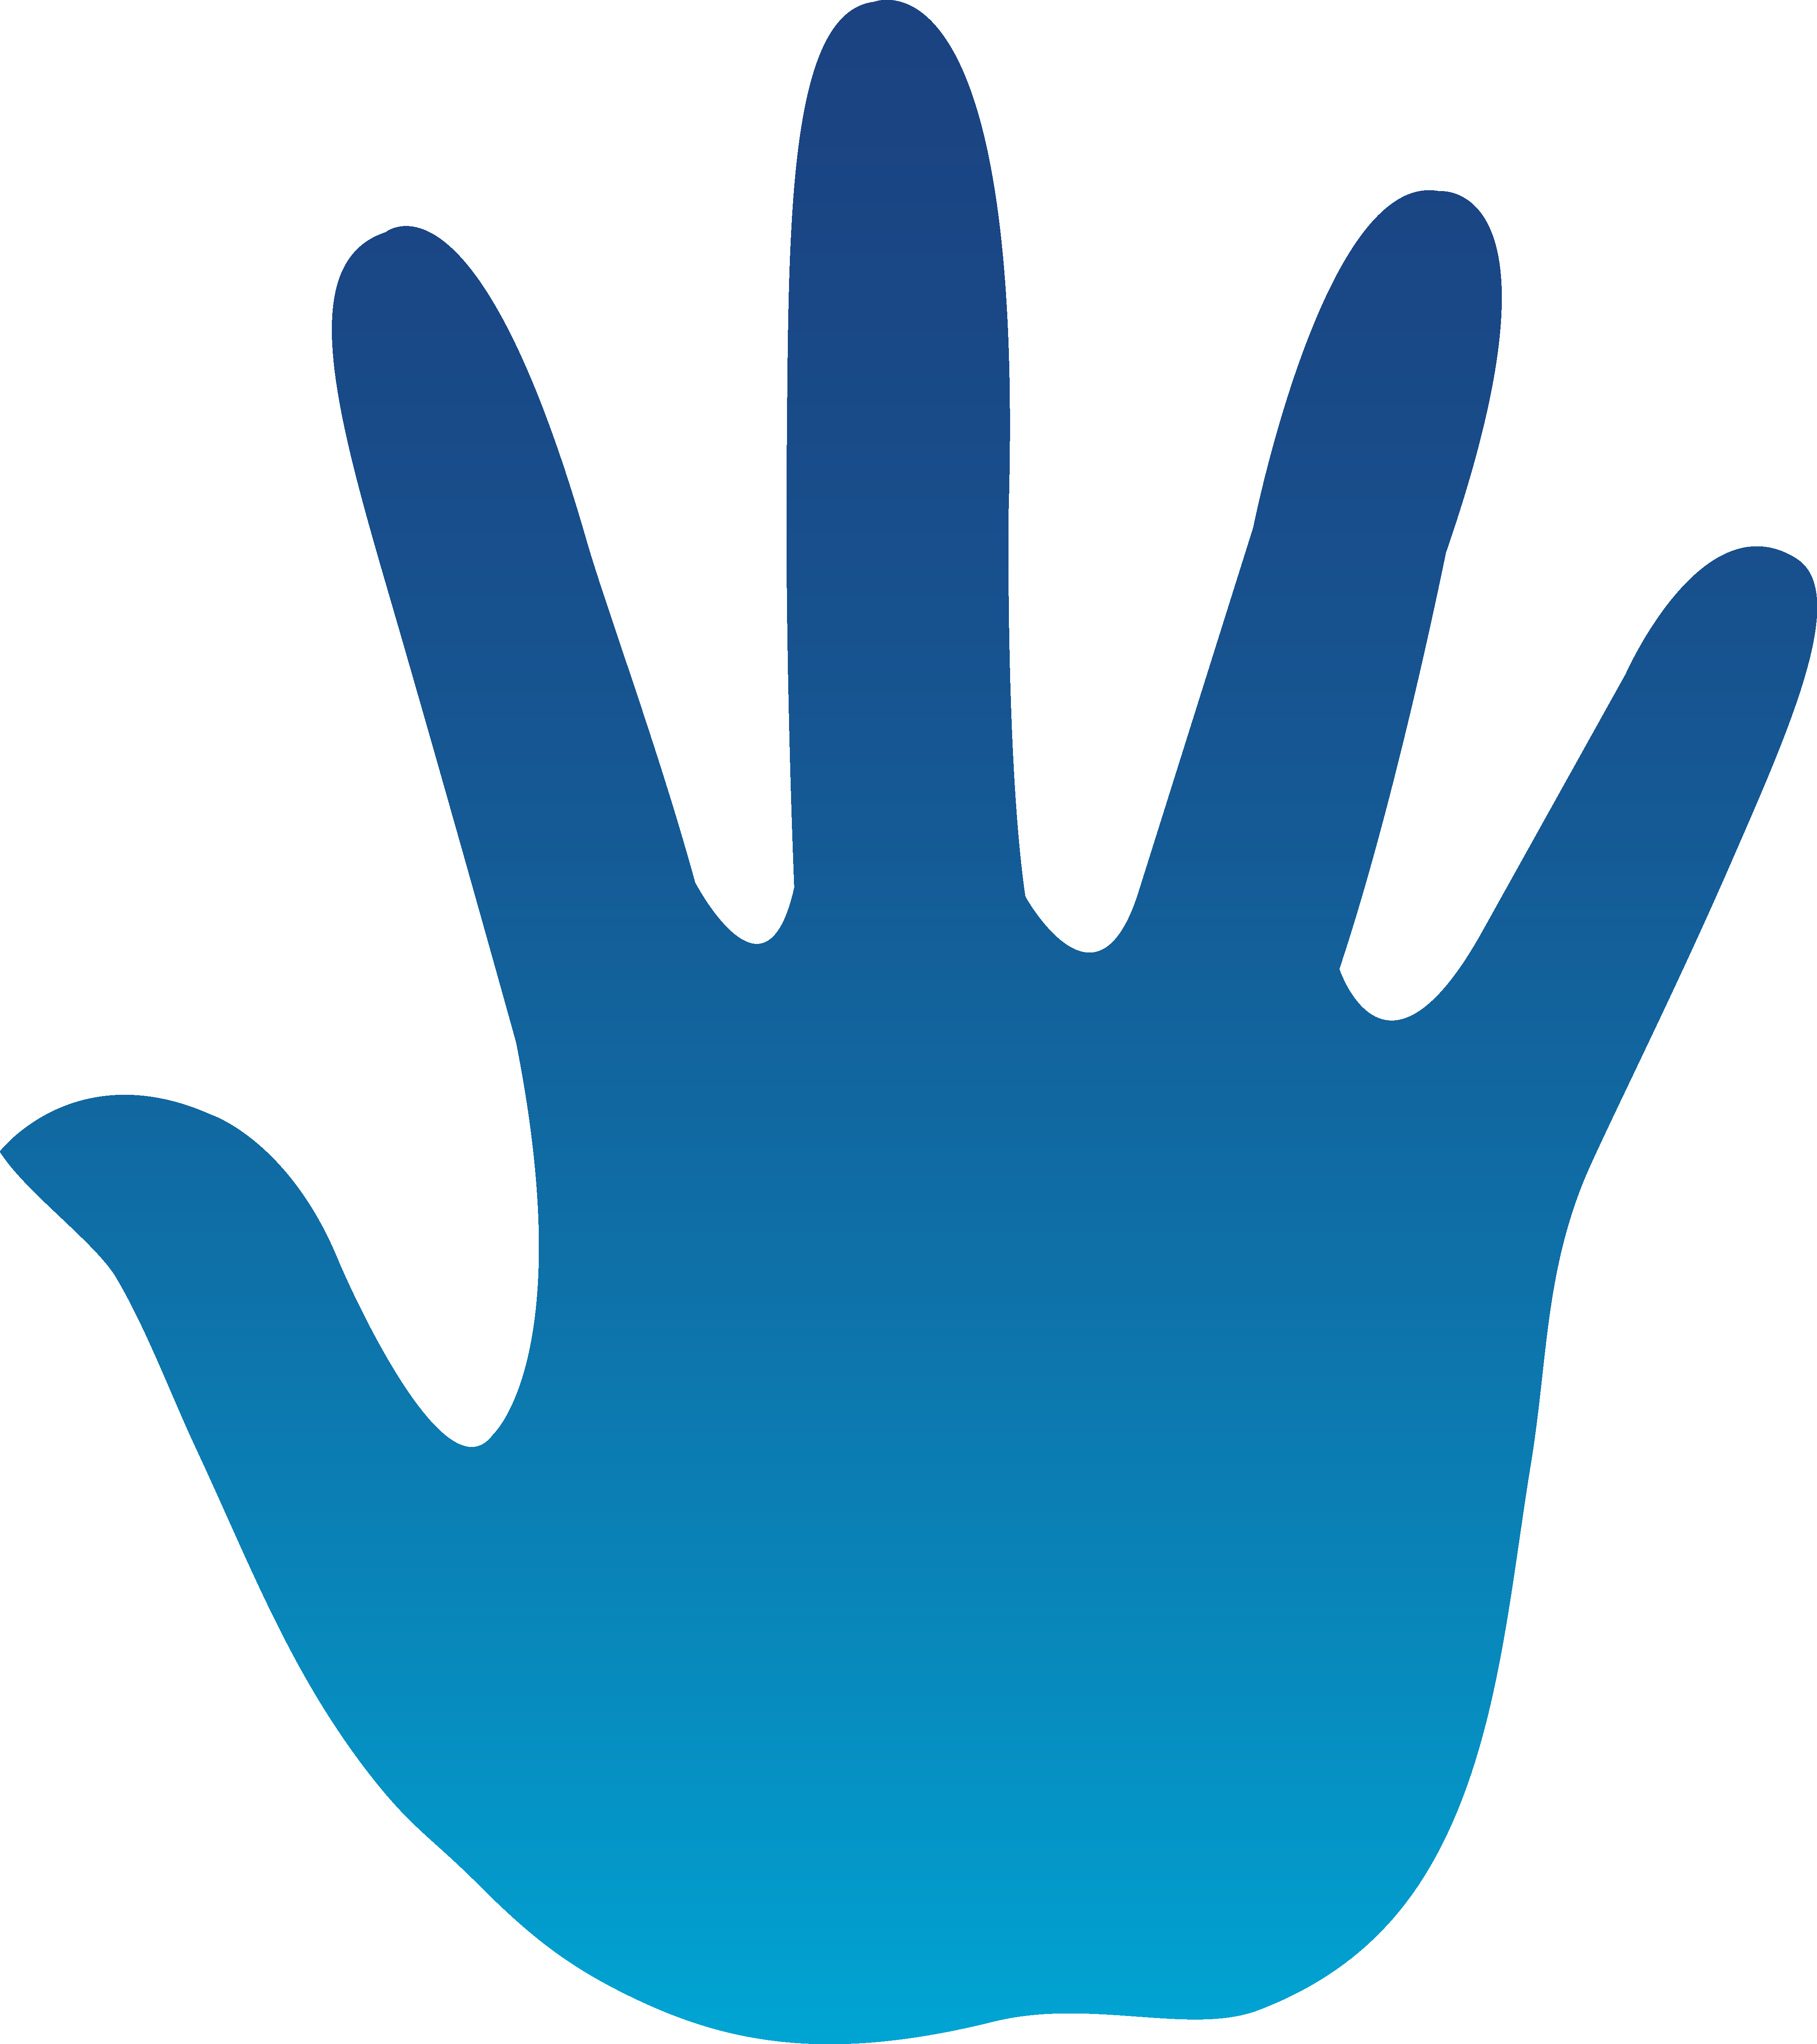 Child hand in adult hand print clipart png clip art free stock Free Handprint Border, Download Free Clip Art, Free Clip Art on ... clip art free stock